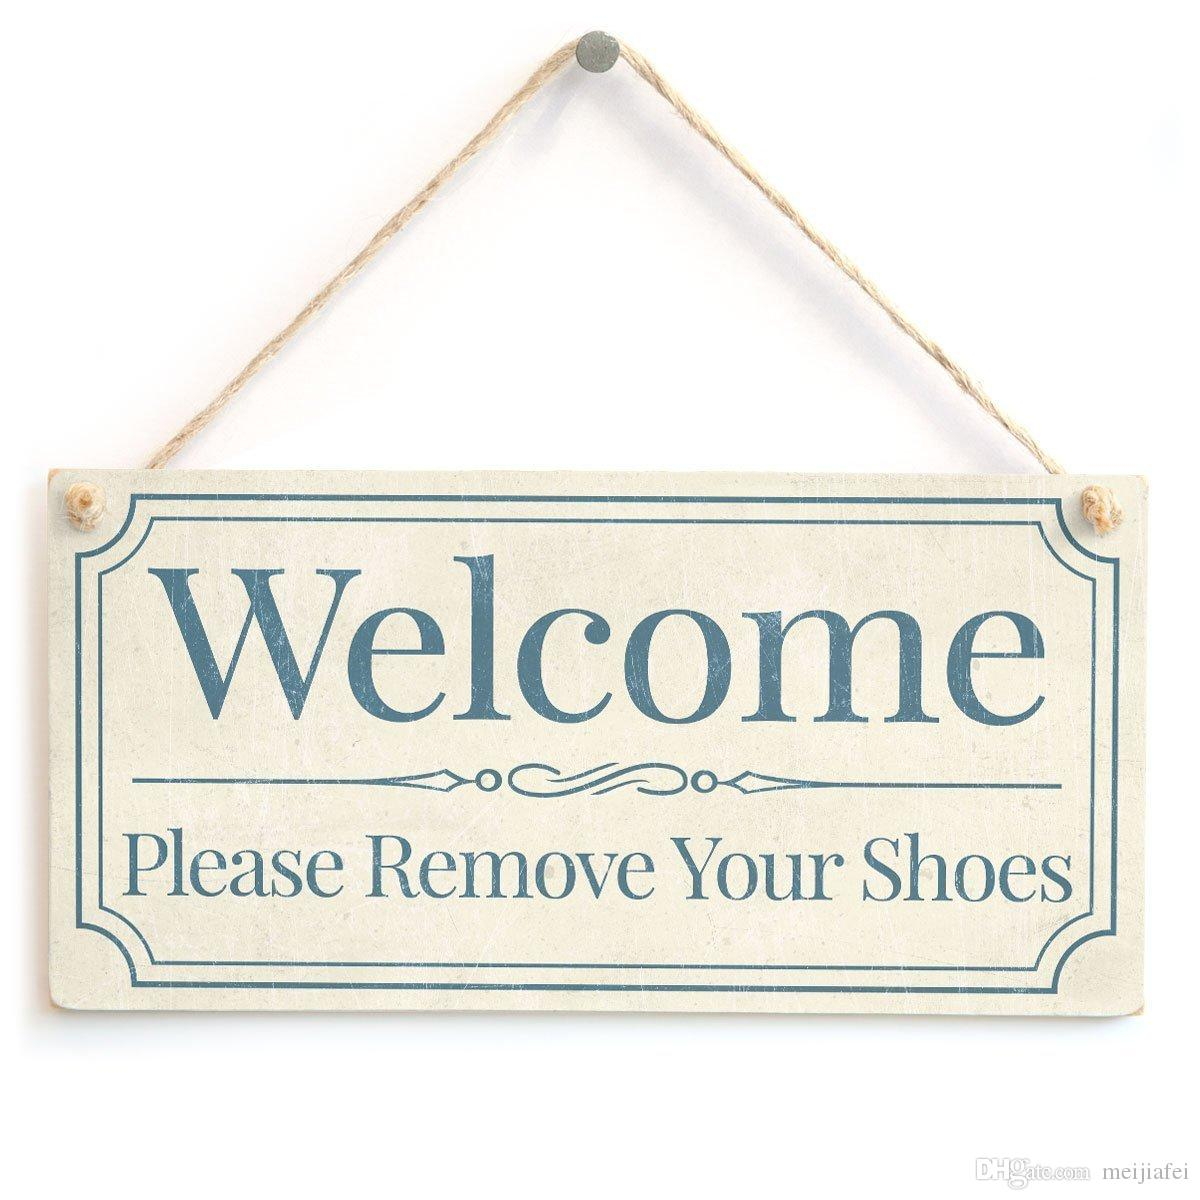 photograph relating to Please Remove Your Shoes Sign Printable Free called Meijiafei Welcome Make sure you Take out Your Footwear - Property Accent Present Indicator / Plaque For Household Front Vestibule 10 x5